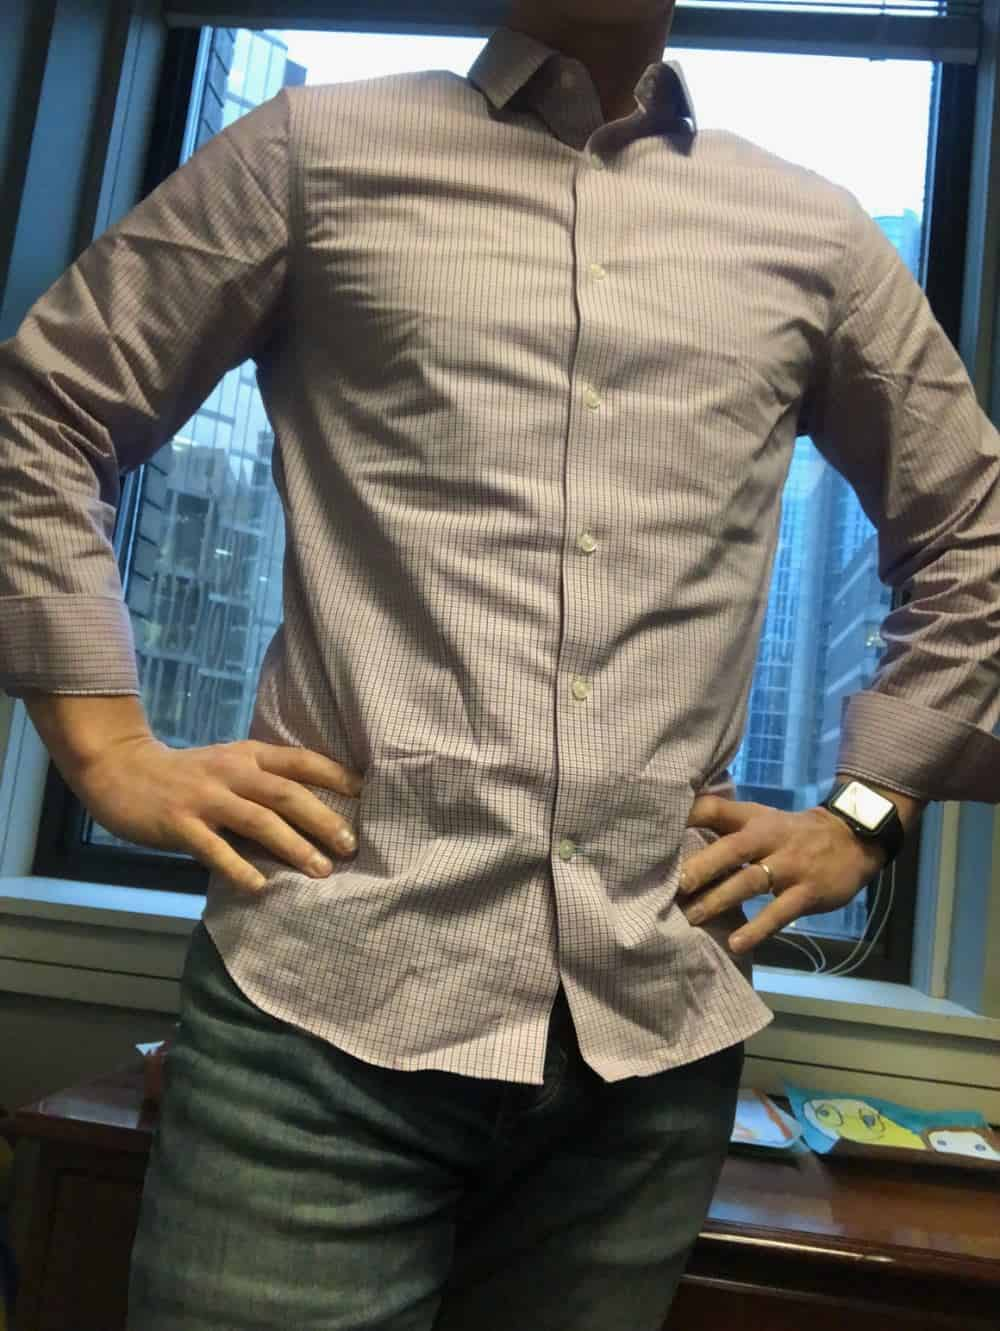 Banana Republic slim fit men's dress shirt - untucked. It's a good length for the untucked look. The jeans are BR slim fit jeans.